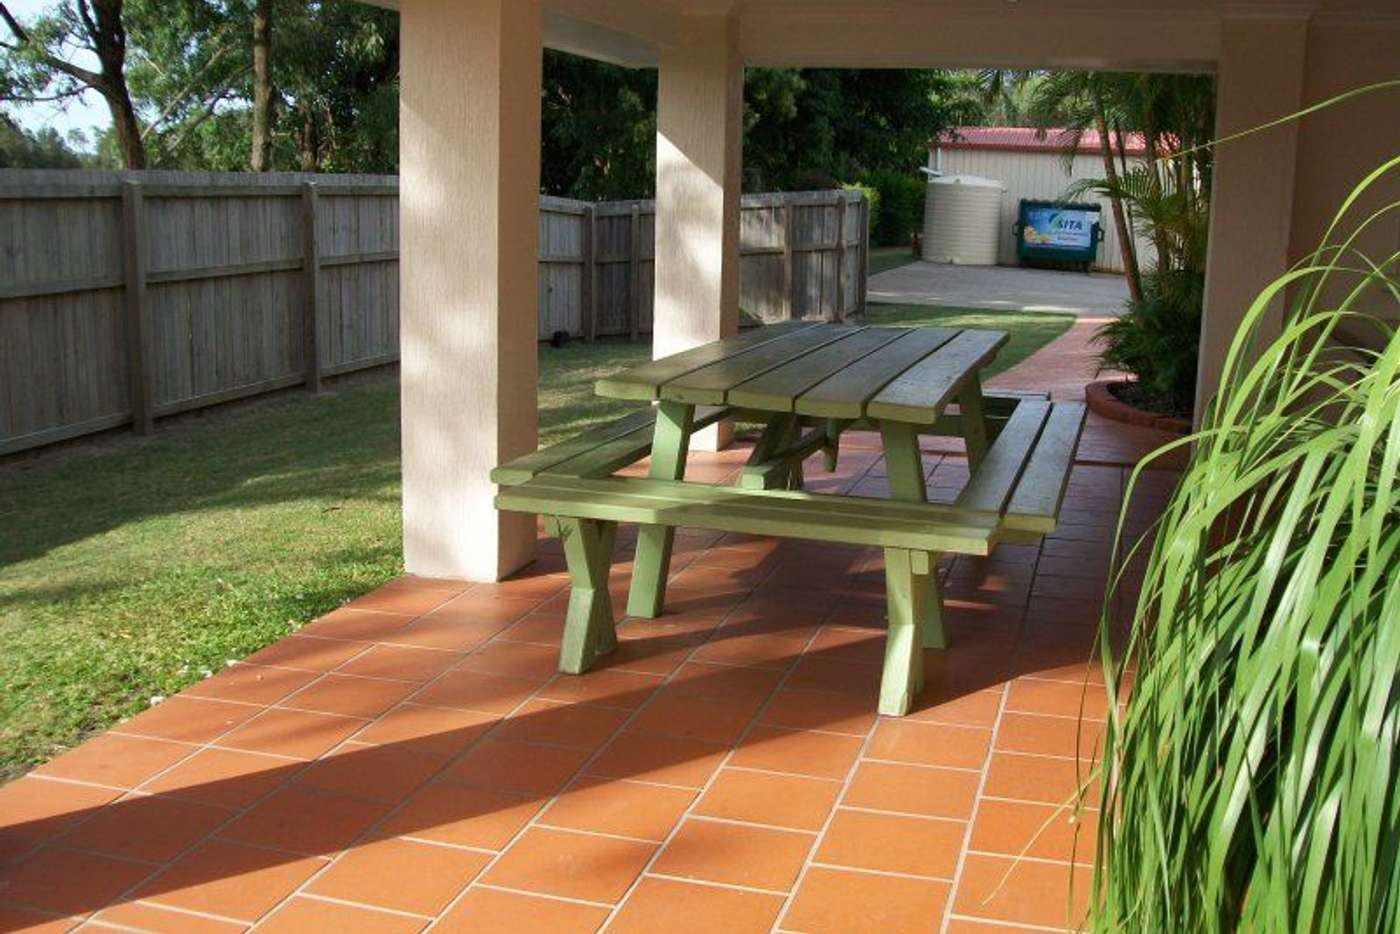 Main view of Homely townhouse listing, 39 125-129 Pappas Way, Carrara QLD 4211